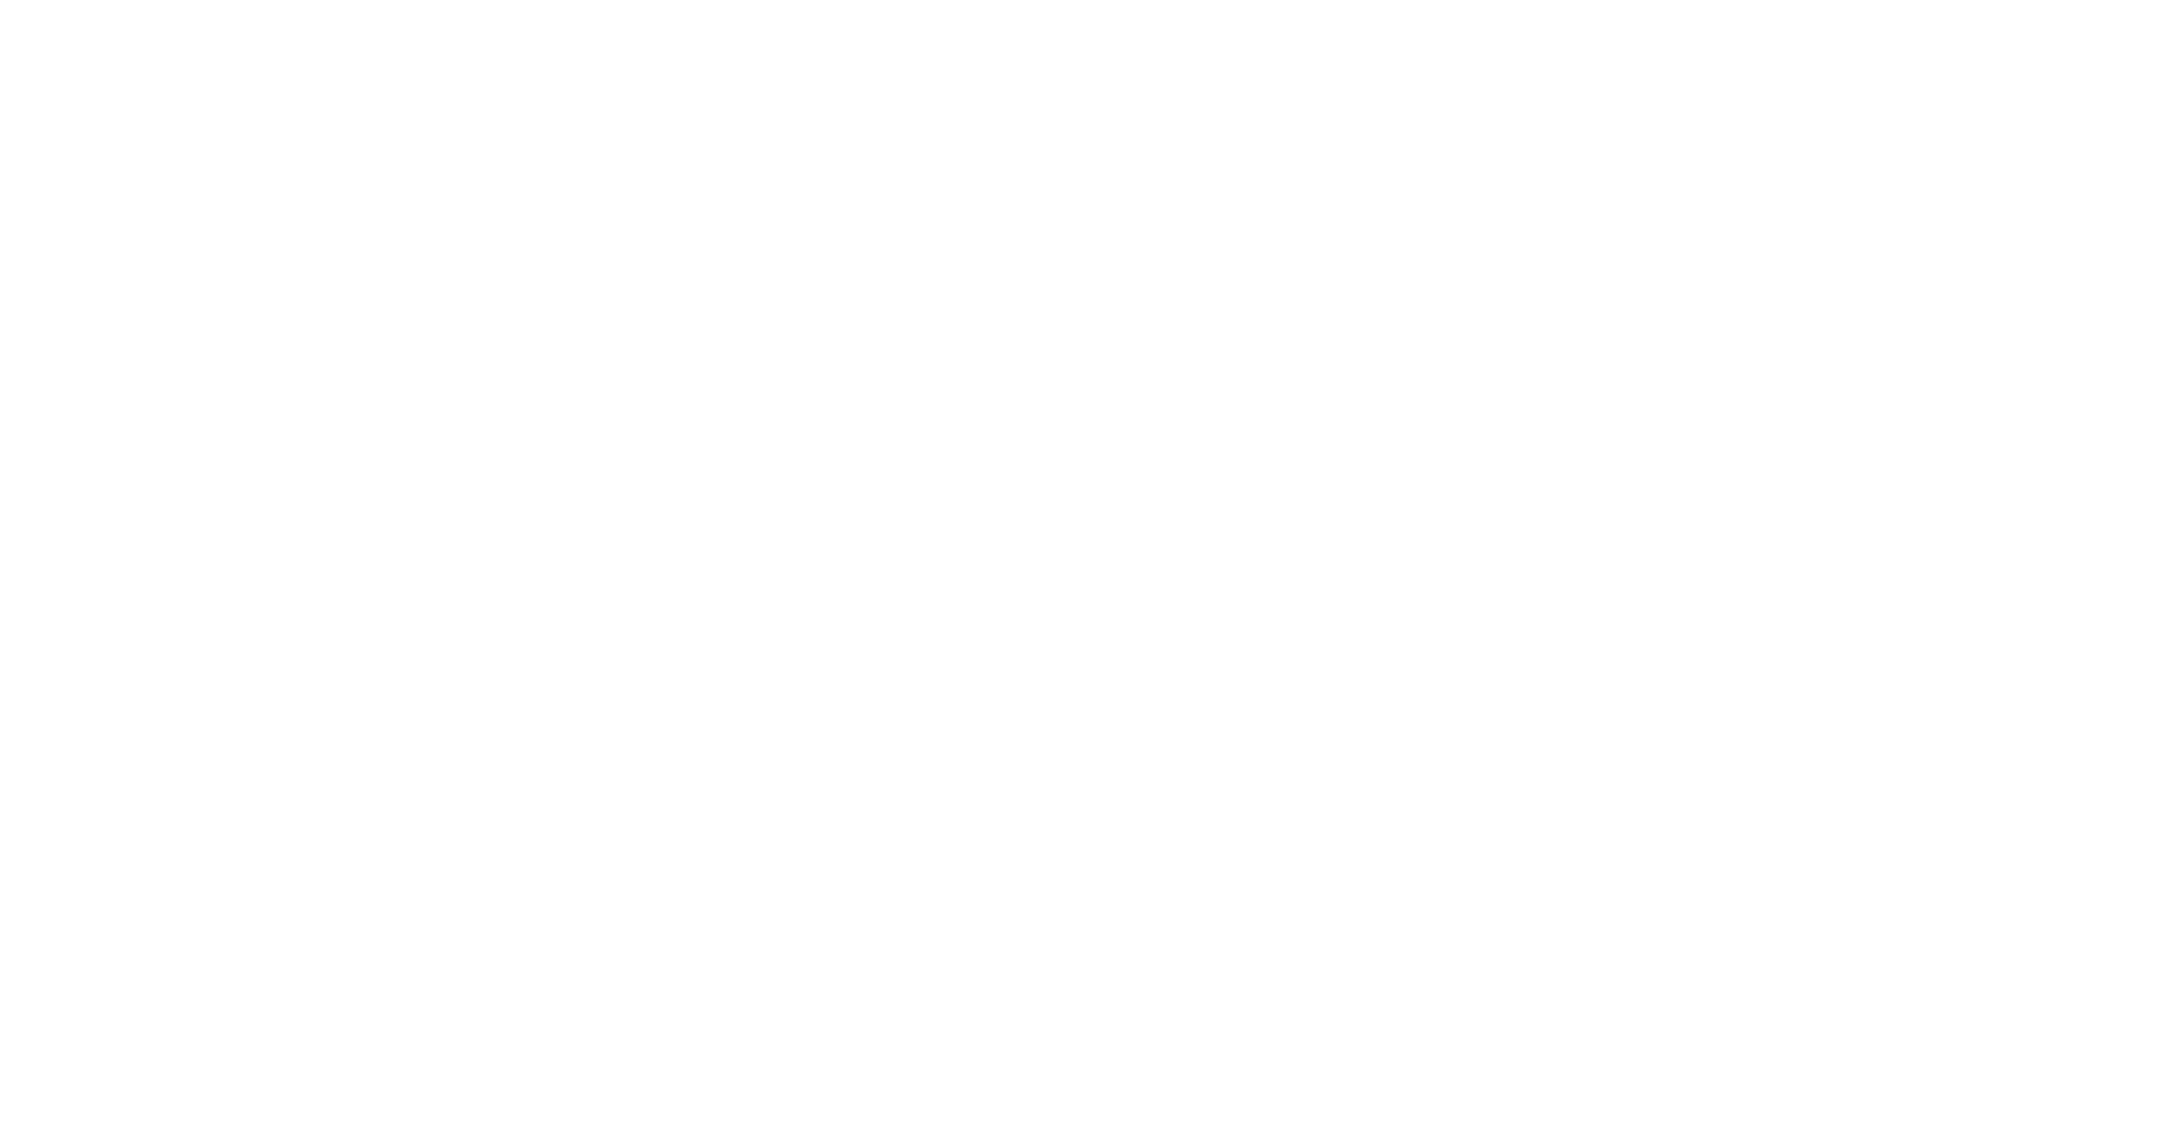 Protect - Protecting IP plays a role in protecting innovation in your organization